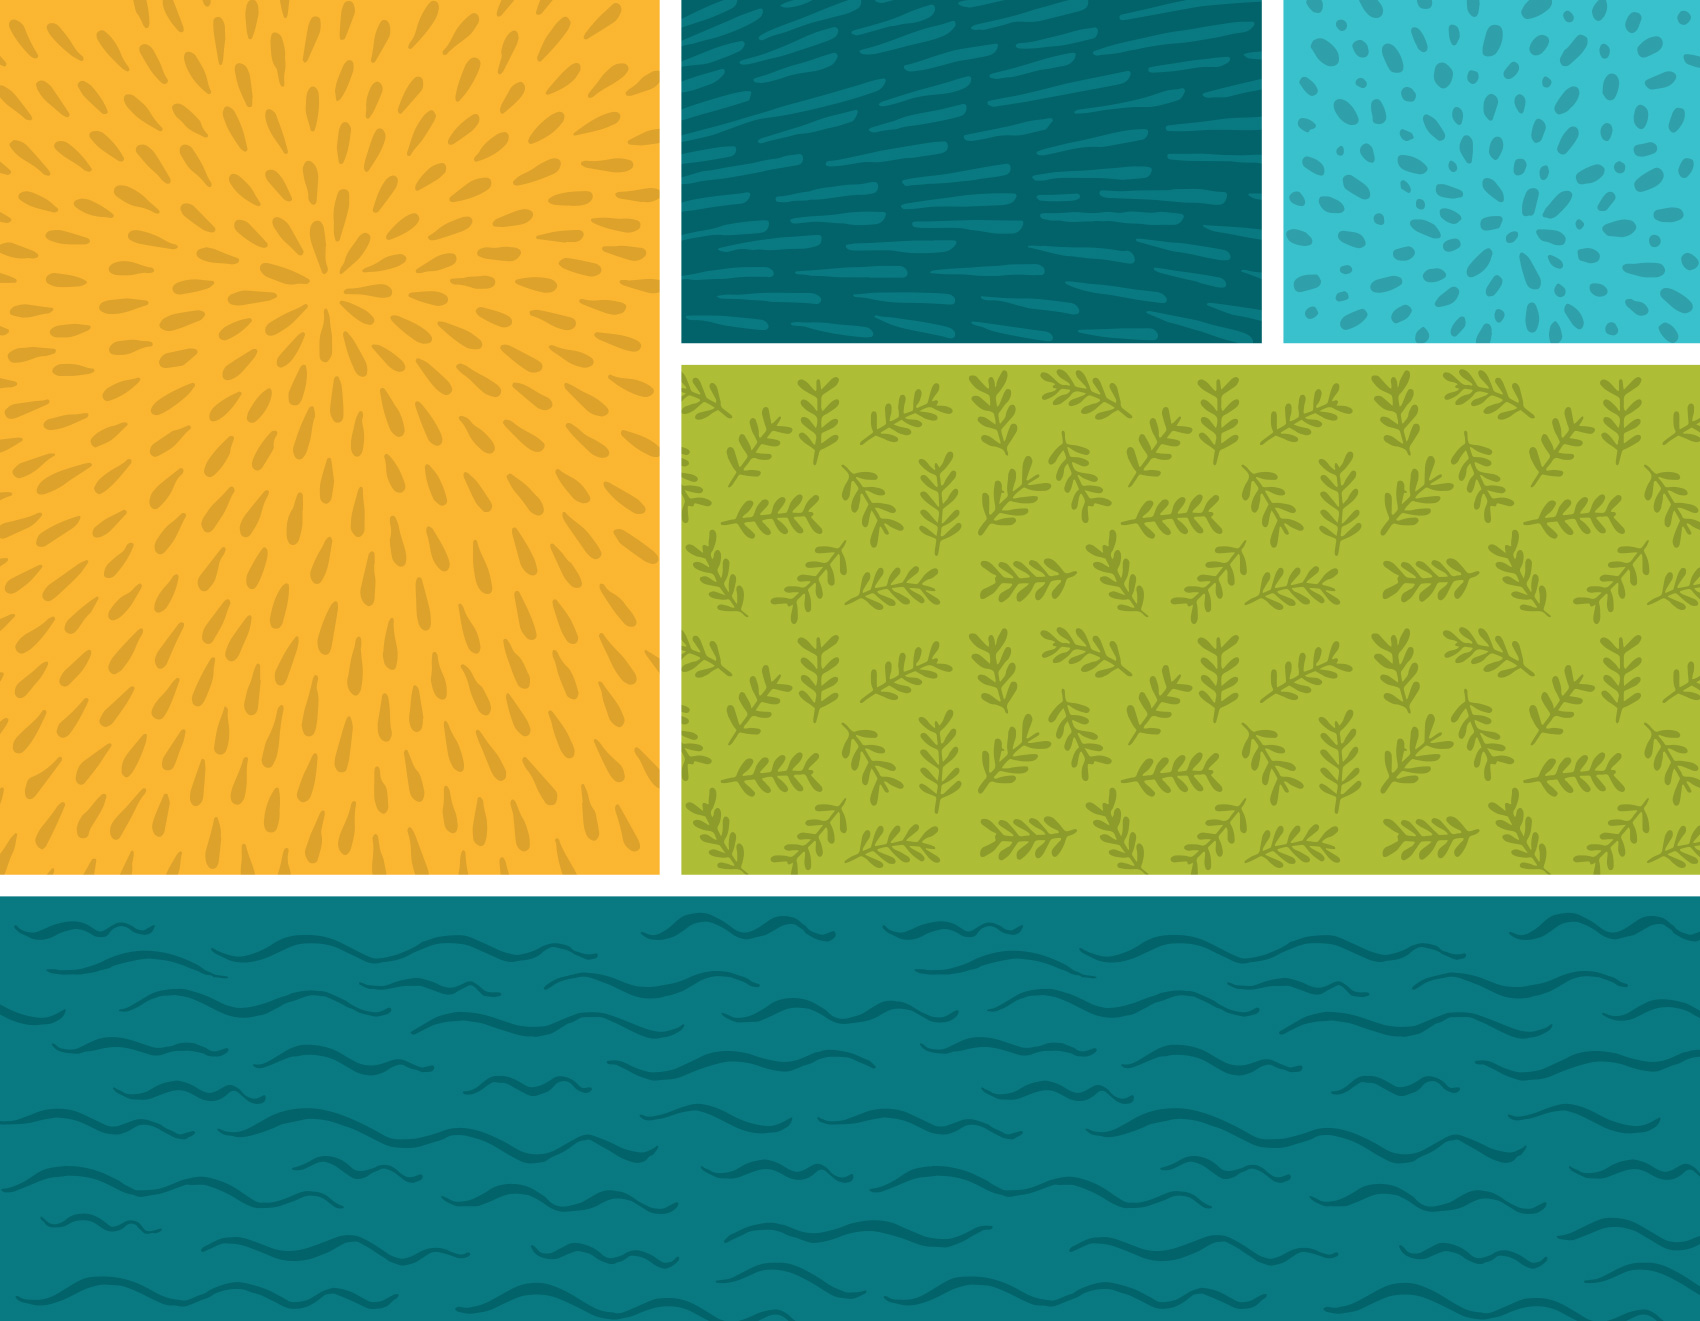 pattern & illustration tests for Umpqua bank: nature based squiggles